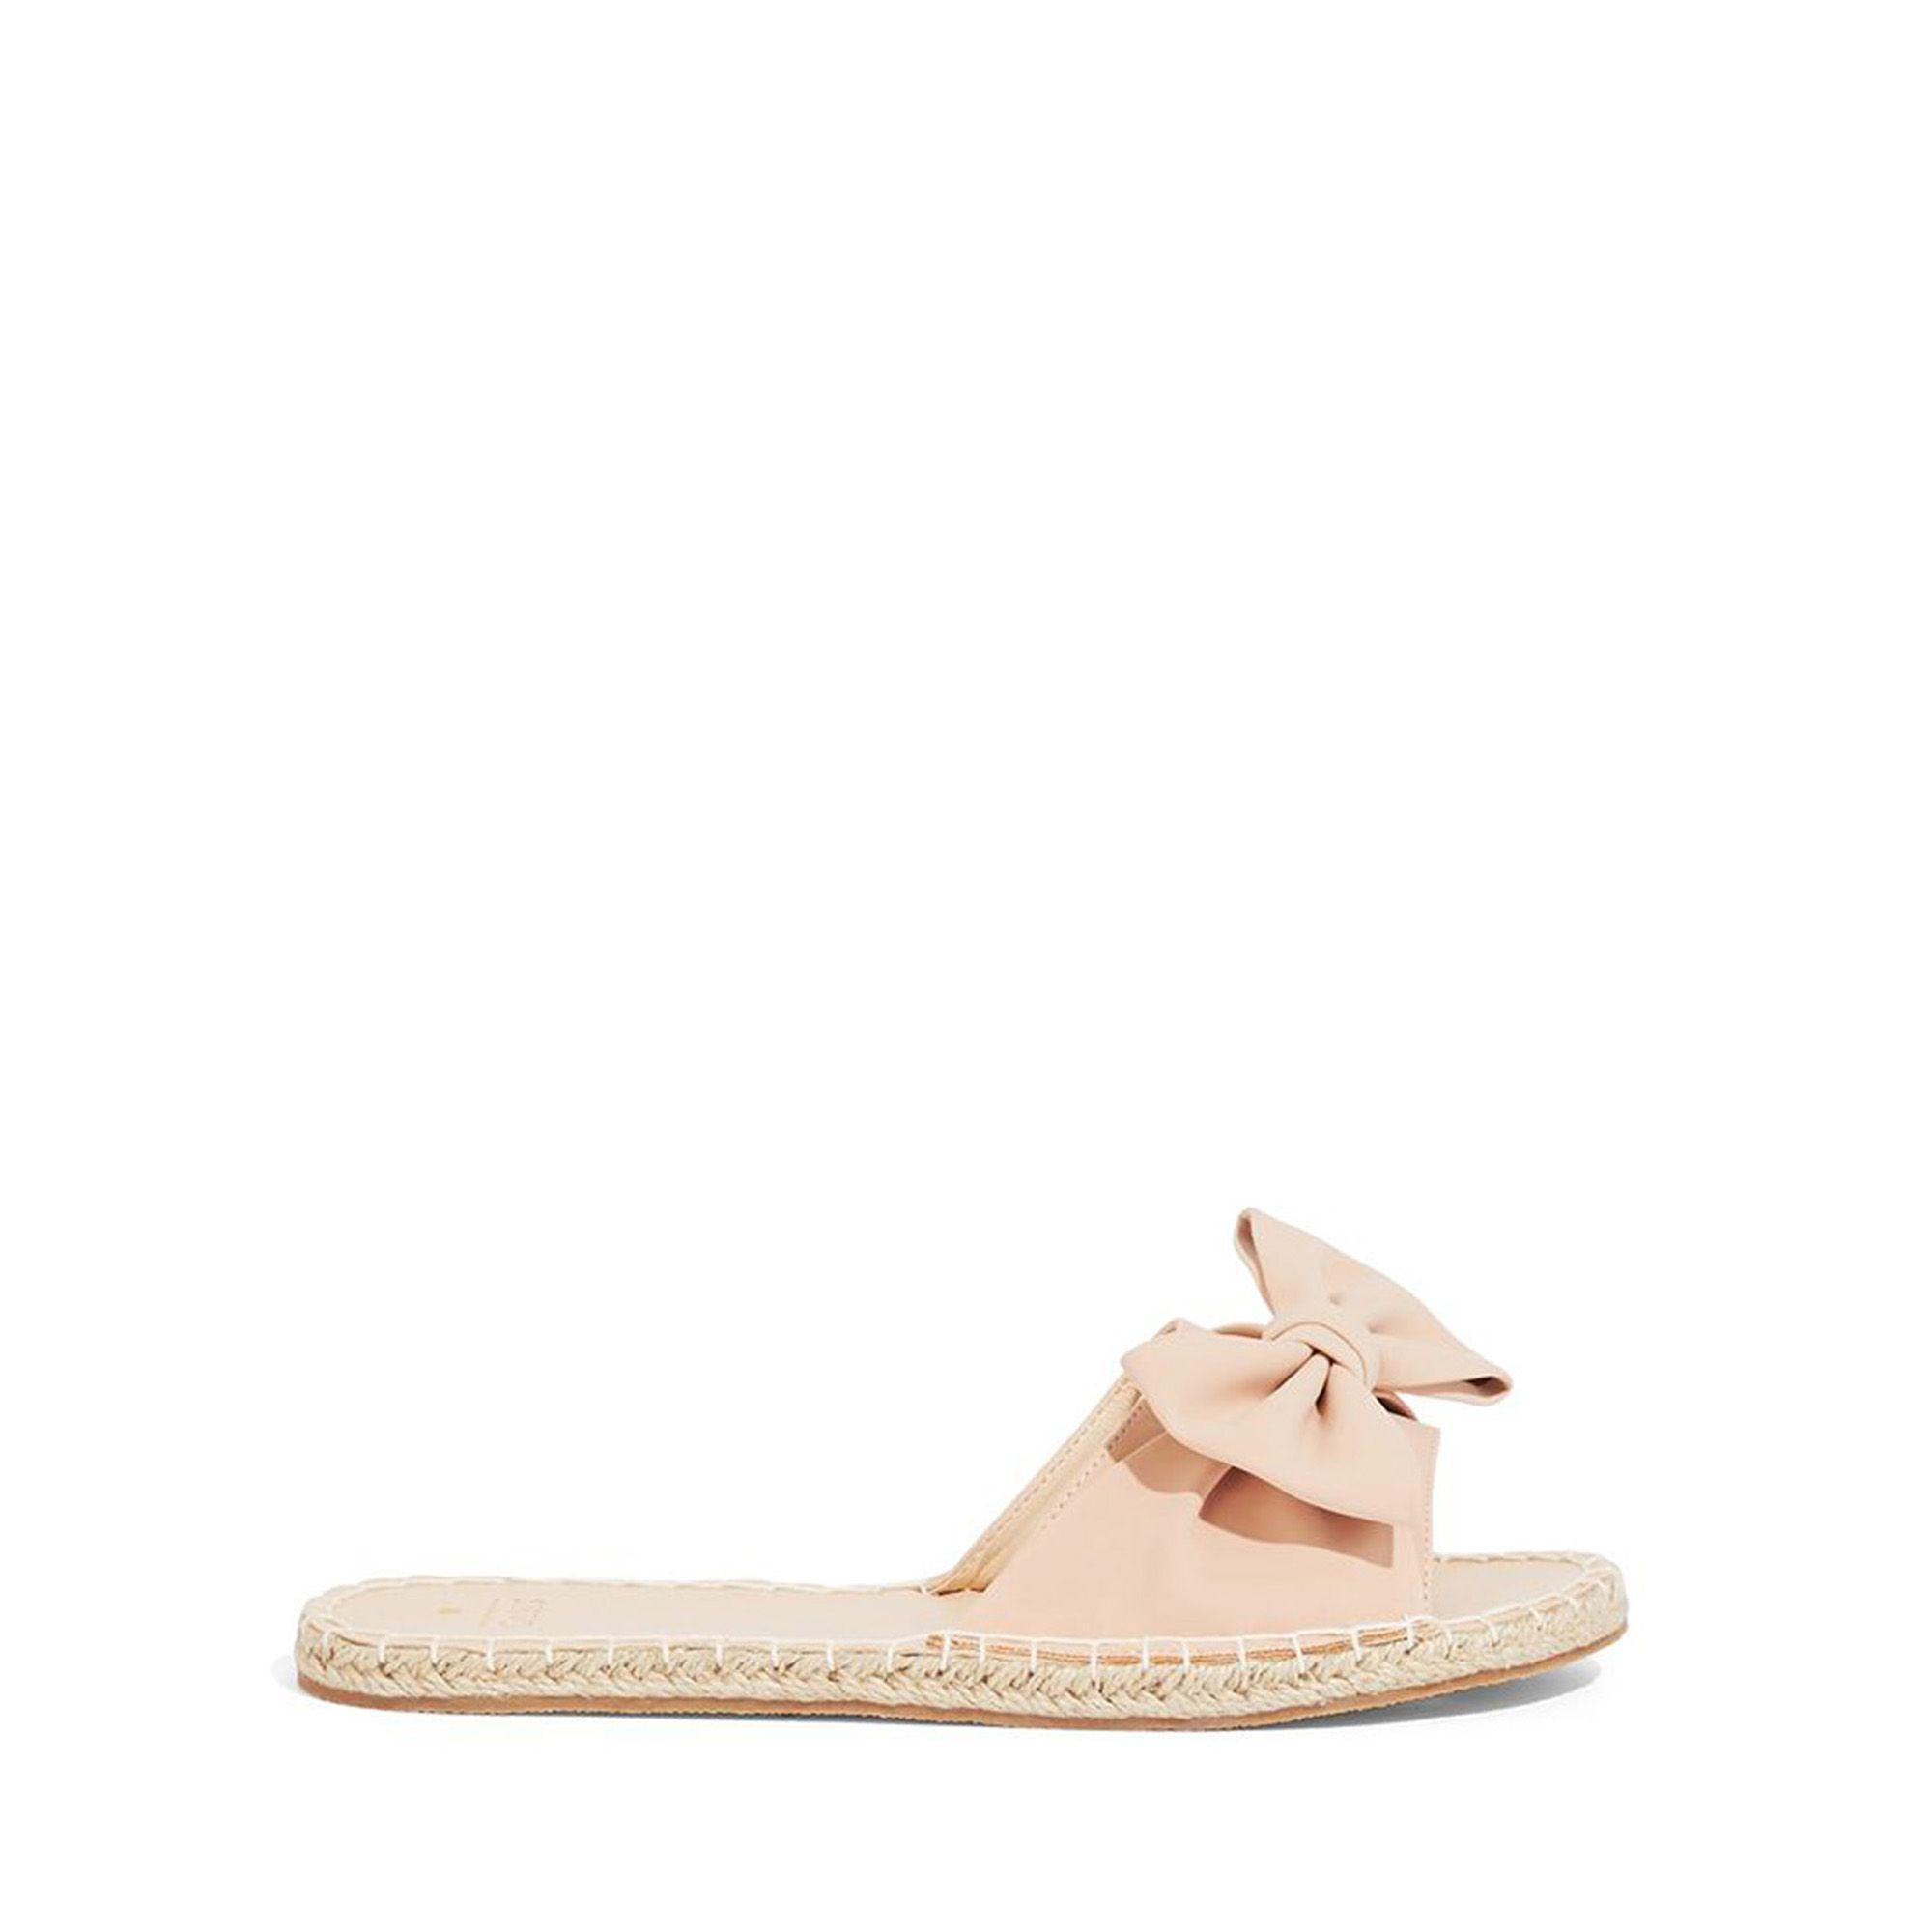 7c2a25a19113 Oasis Nude Bow Espadrille Sliders in Natural - Lyst